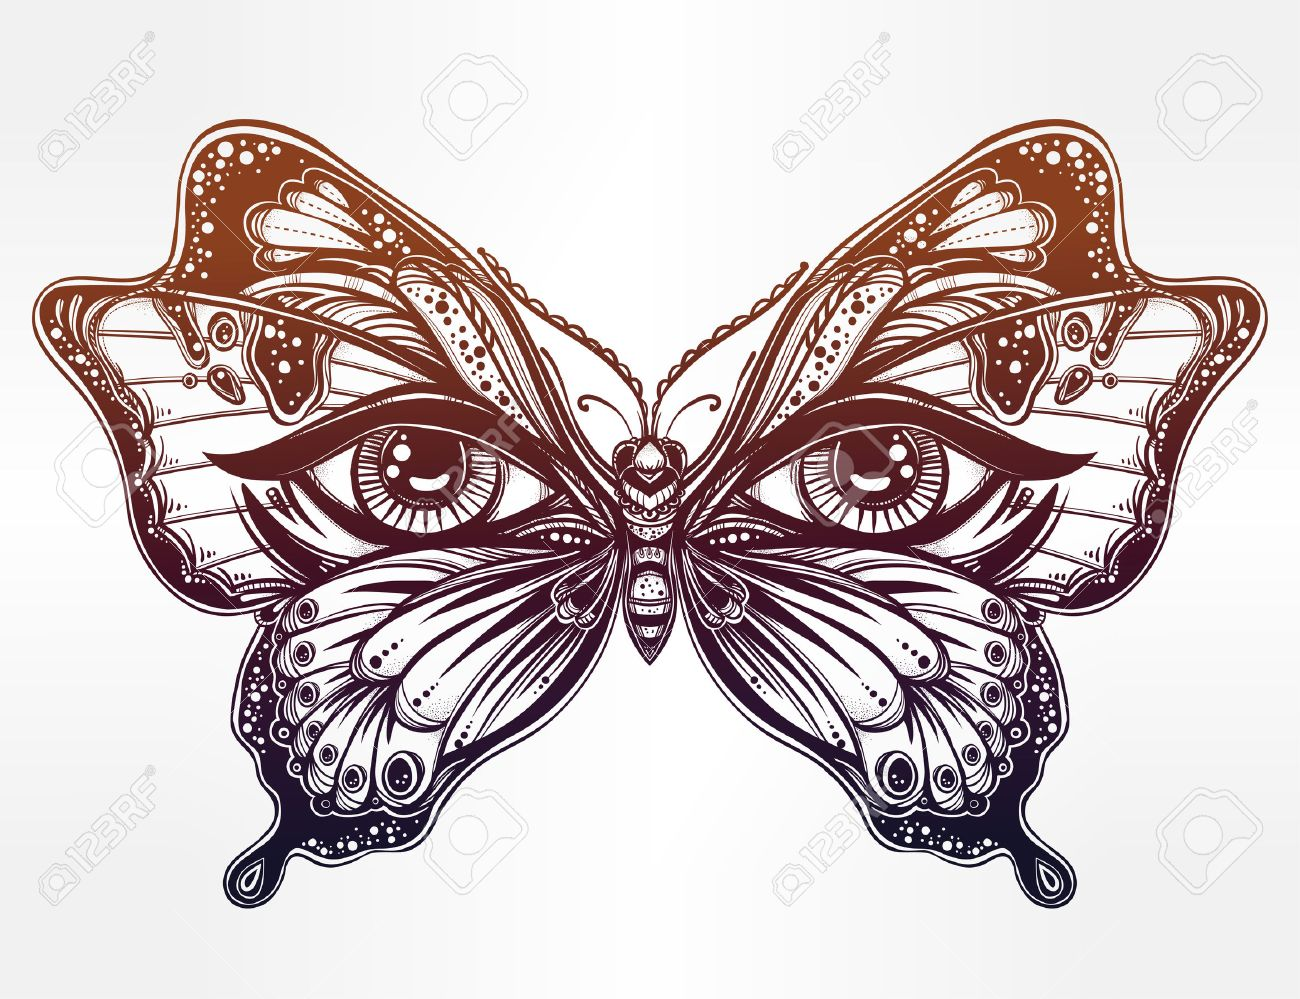 1300x999 Beautiful Butterfly Wings With Human Eyes In Retro Flash Tattoo